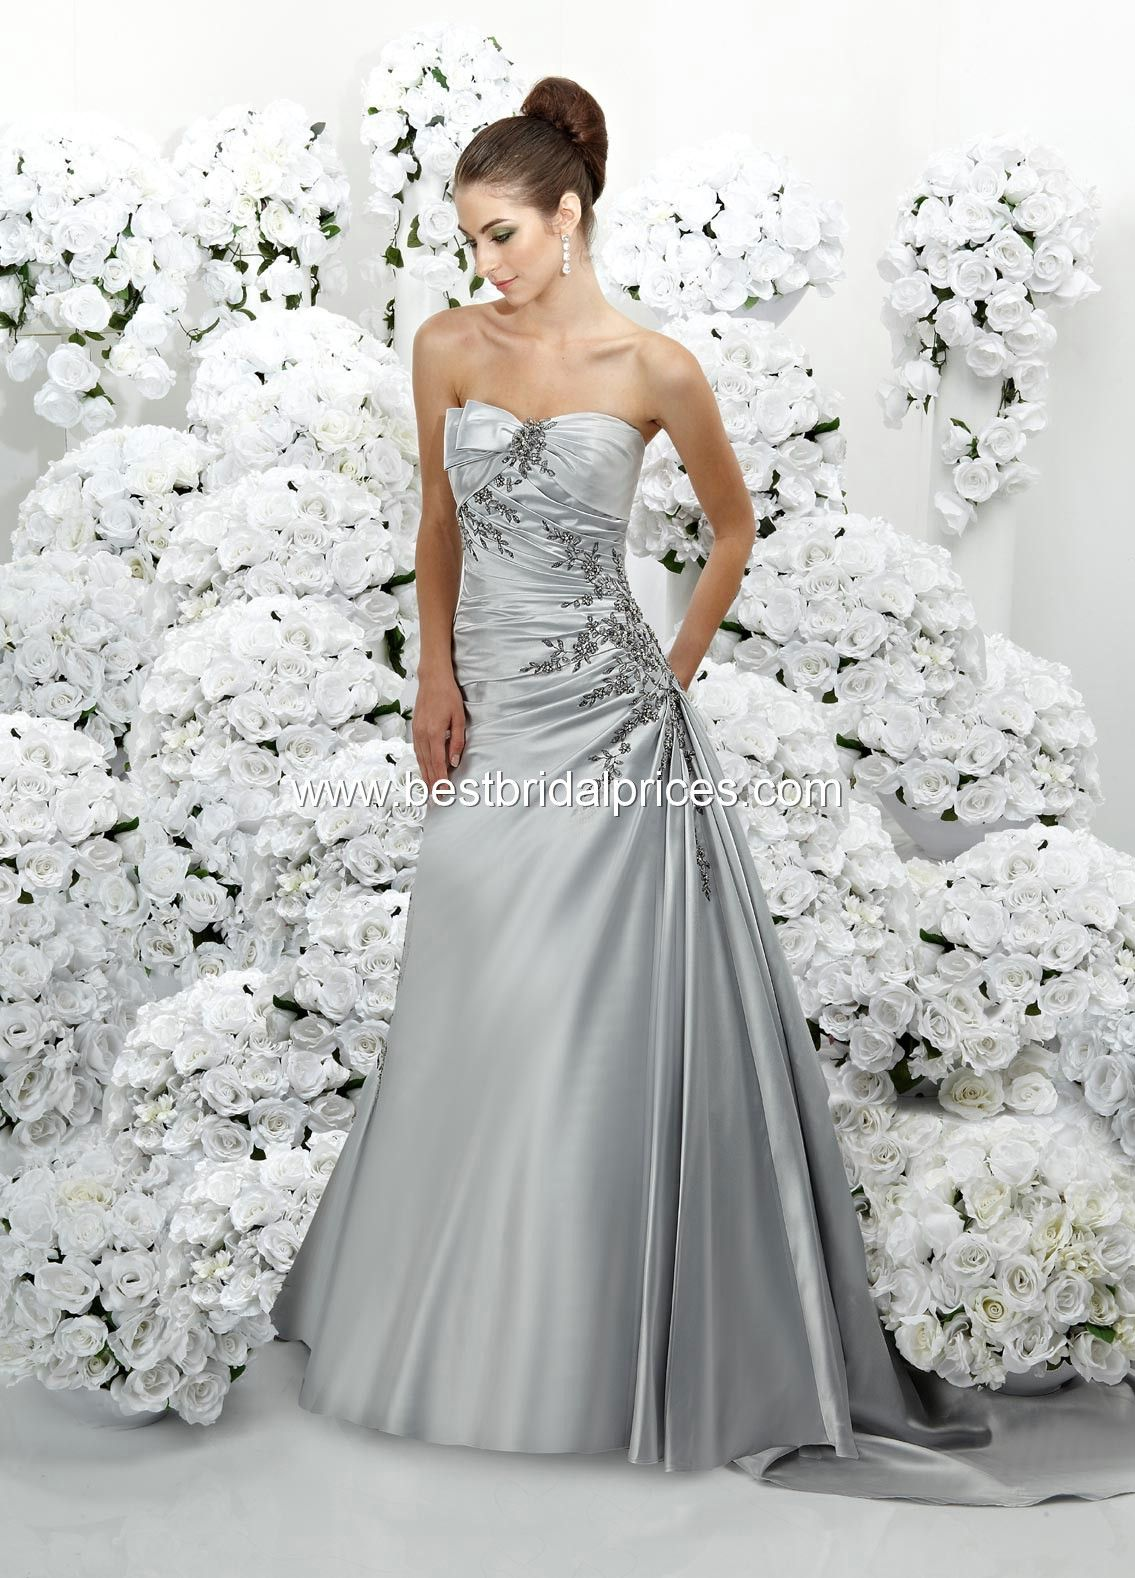 Platinum silver wedding dress diy crafts pinterest for Silver wedding dresses 25th anniversary